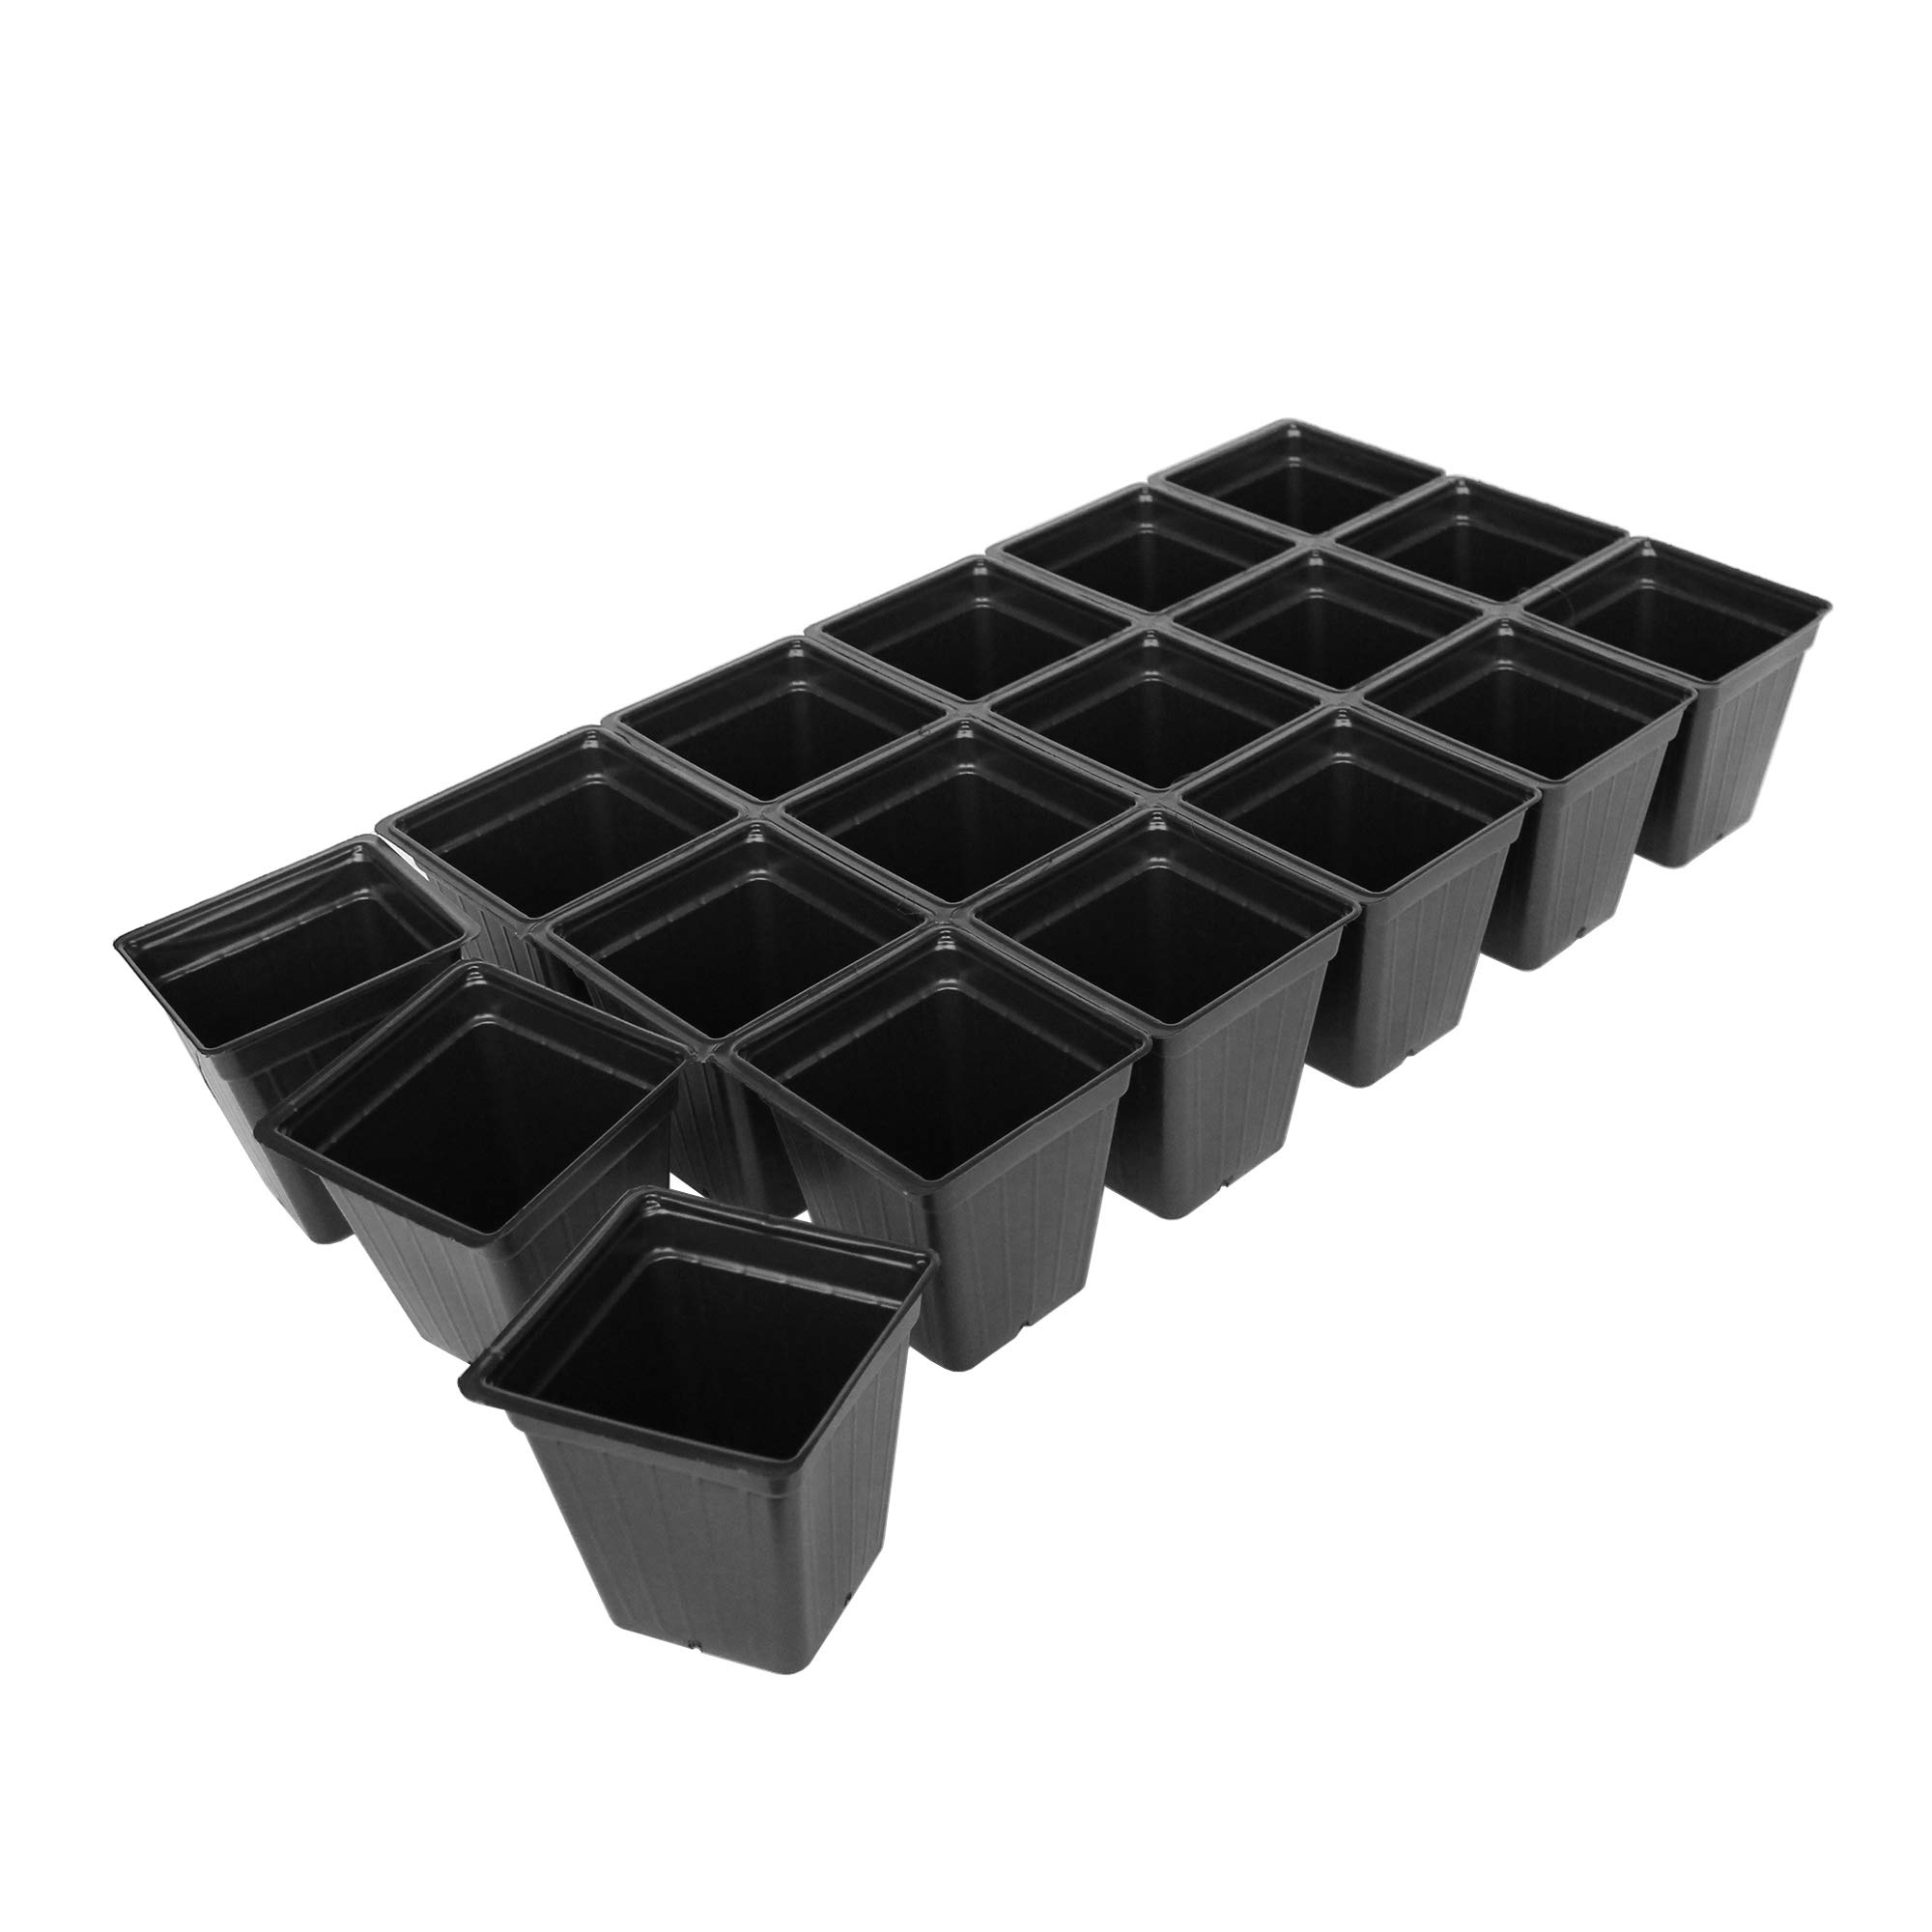 Handy Pantry Black Plastic Garden Tray Inserts - 50 Sheets of 18 Planting Pot Cells Each - 3x6 Configuration - Perforated - Nursery, Greenhouse, Gardening